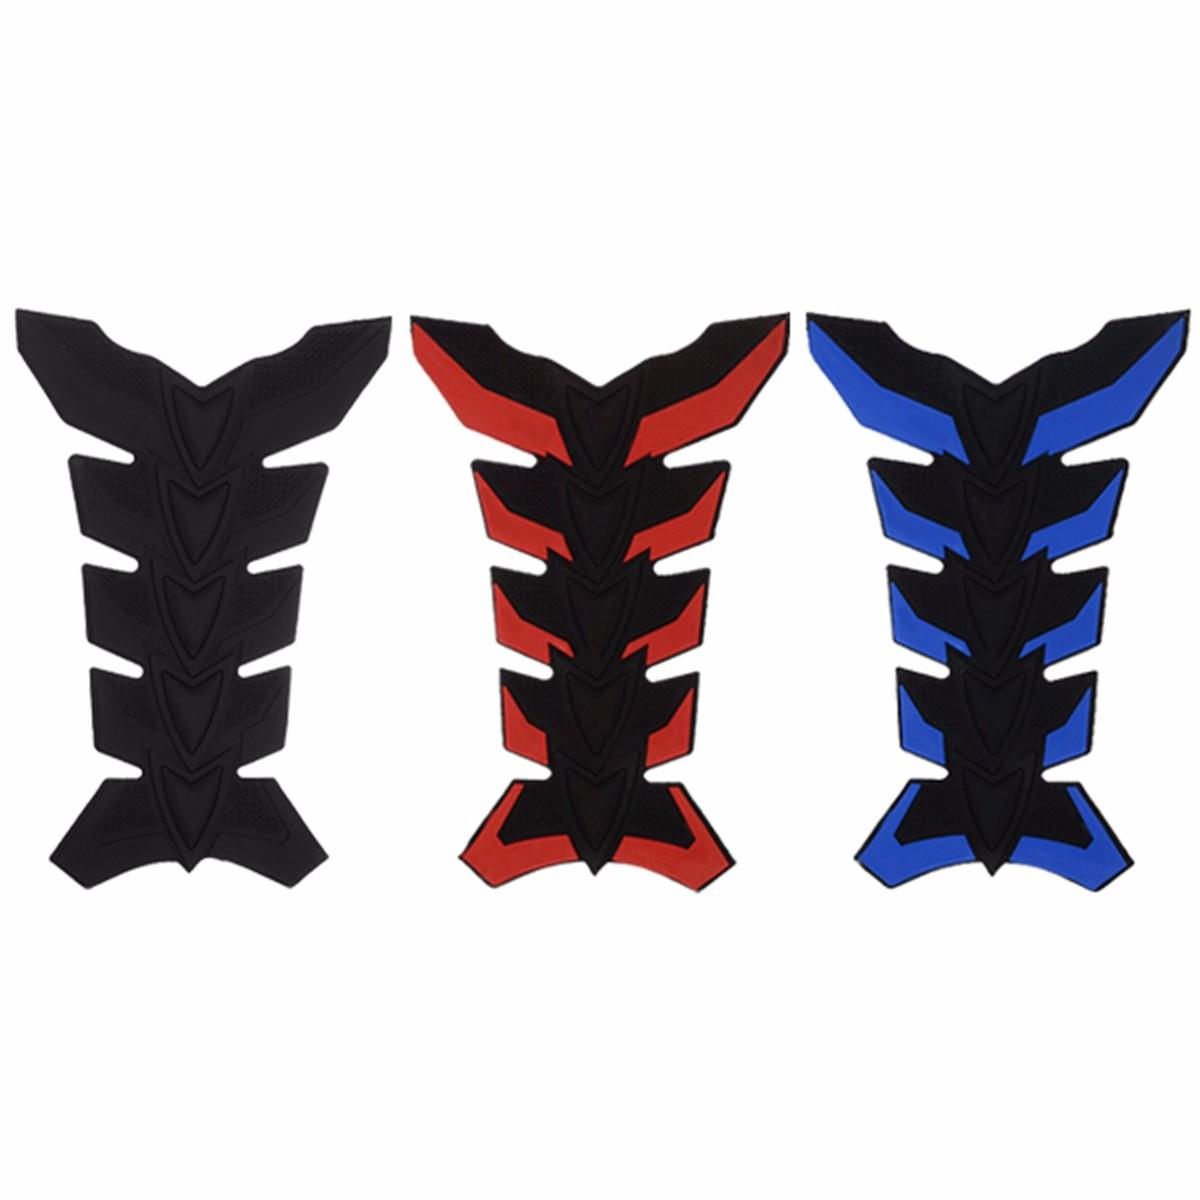 3d Rubber Fuel Tank Pad Protector Sticker Decal Motorcycle Motor Bike Modified